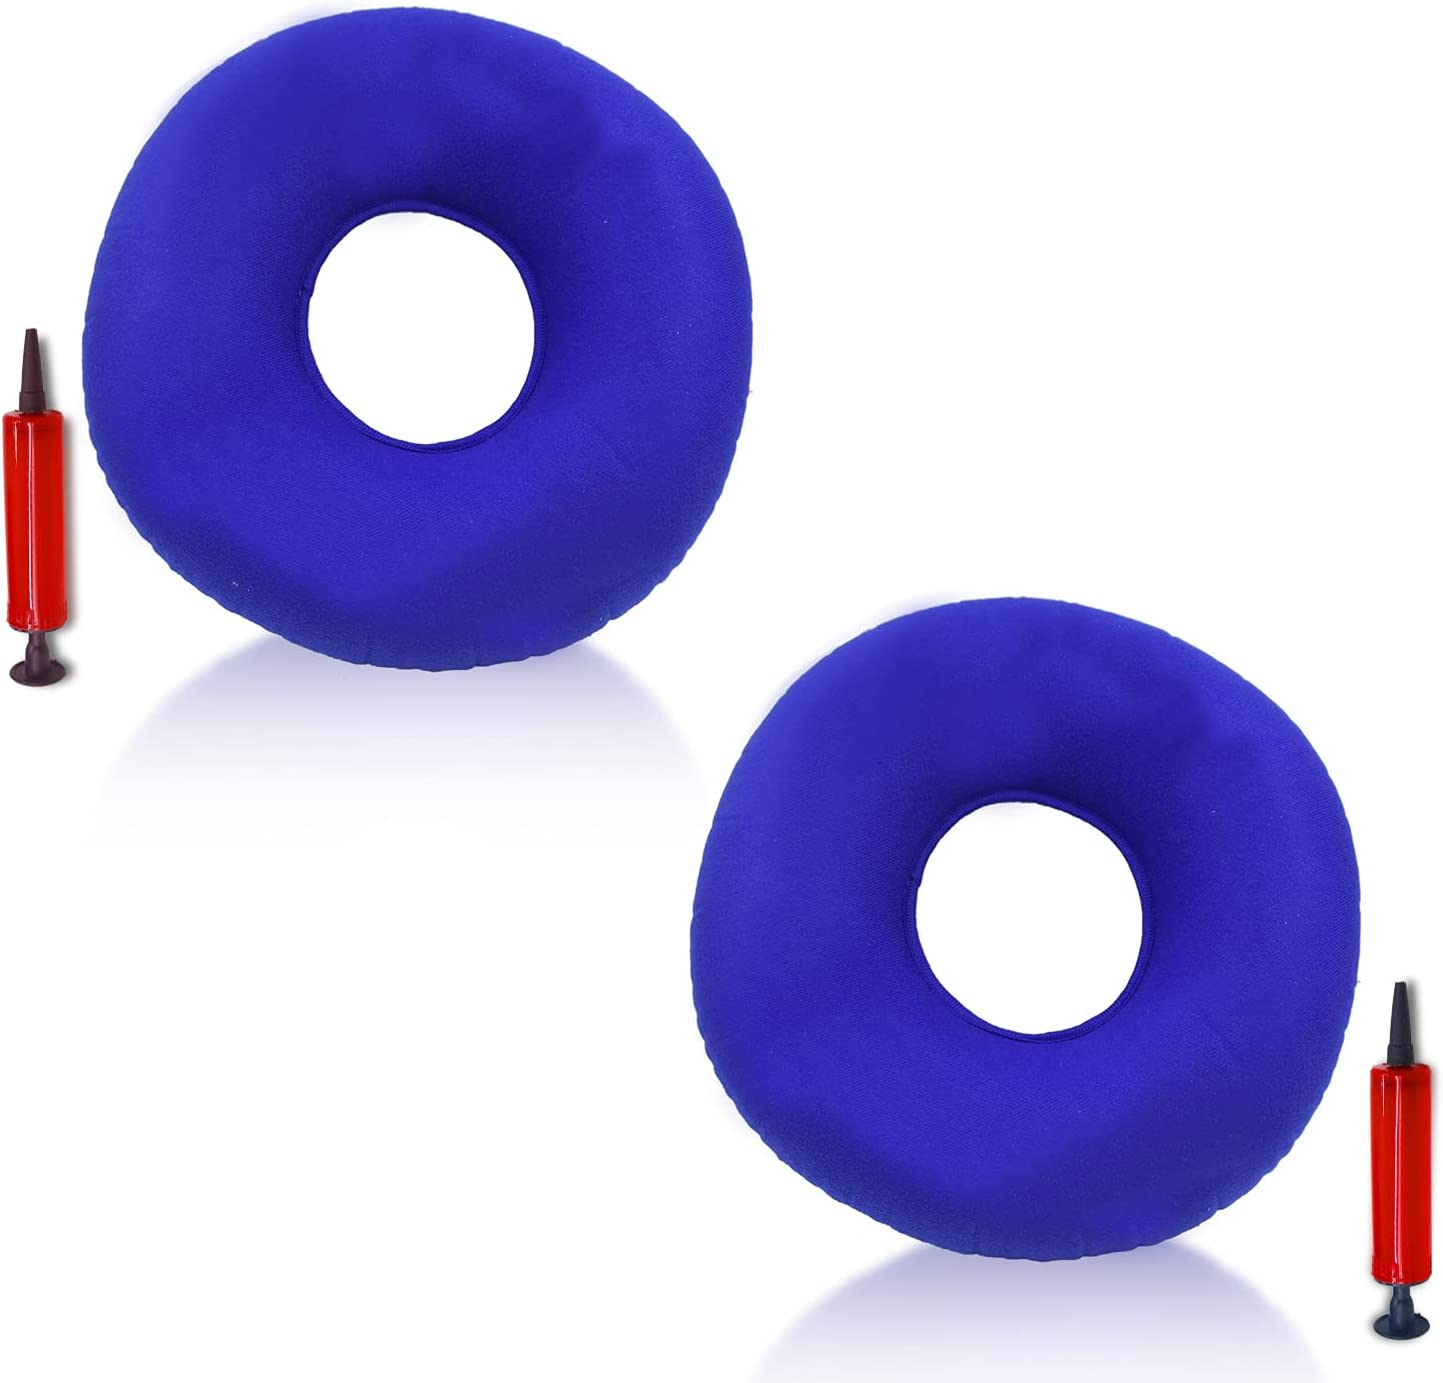 2 Pack Inflatable Ring Cushion Award with Pump Hemorrhoid A Pill Max 51% OFF Seat